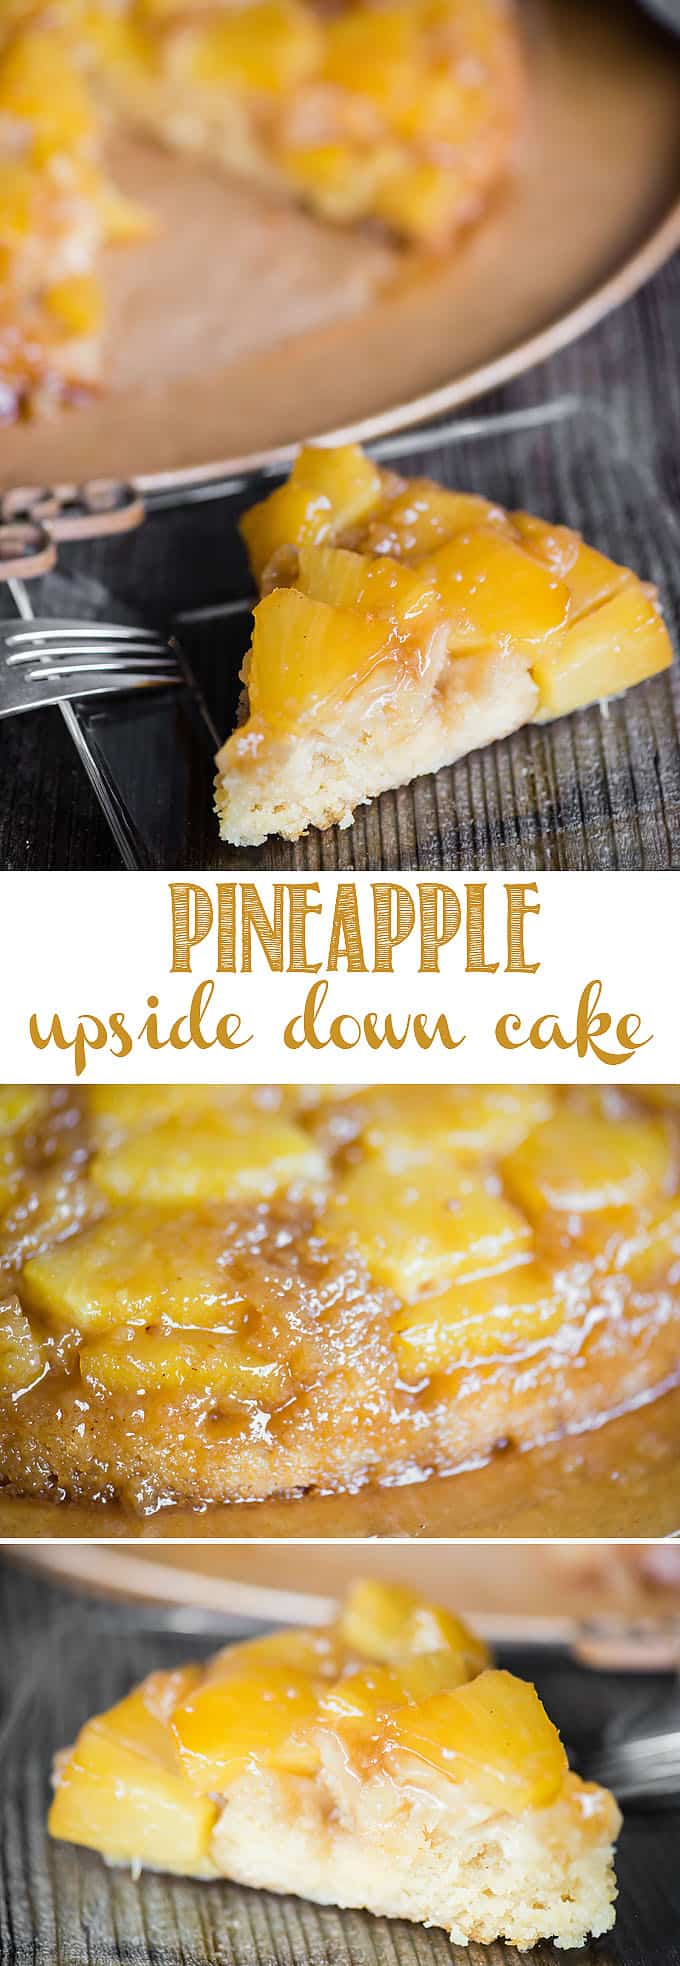 Pineapple Upside Down Cake, made with fresh pineapple and tepache, a type of pineapple hard cider, is the most delicious dessert you can make in a cast iron skillet! A layer of sweet and juicy pineapple pieces are smothered in a super sweet topping. Then the most moist and flavorful cake cooks on top. #pineappleupsidedowncake #upsidedowncake #castiron #pineapple #tepache